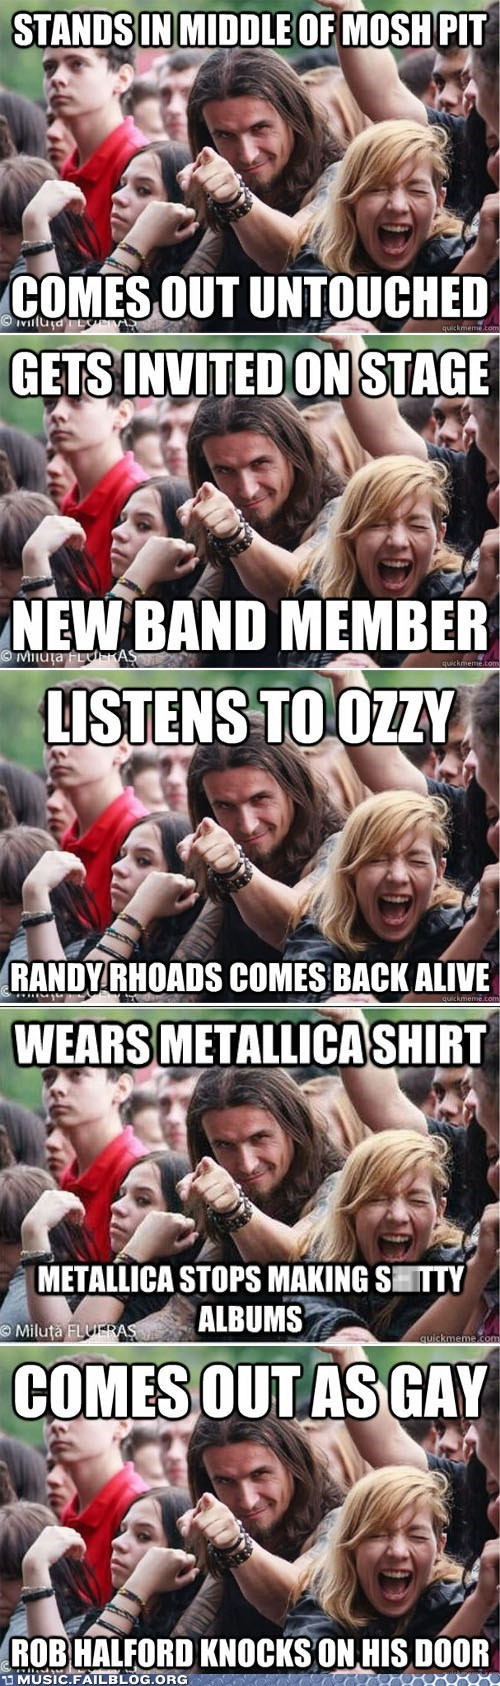 Music FAILS: Ridiculously Photogenic Metalhead